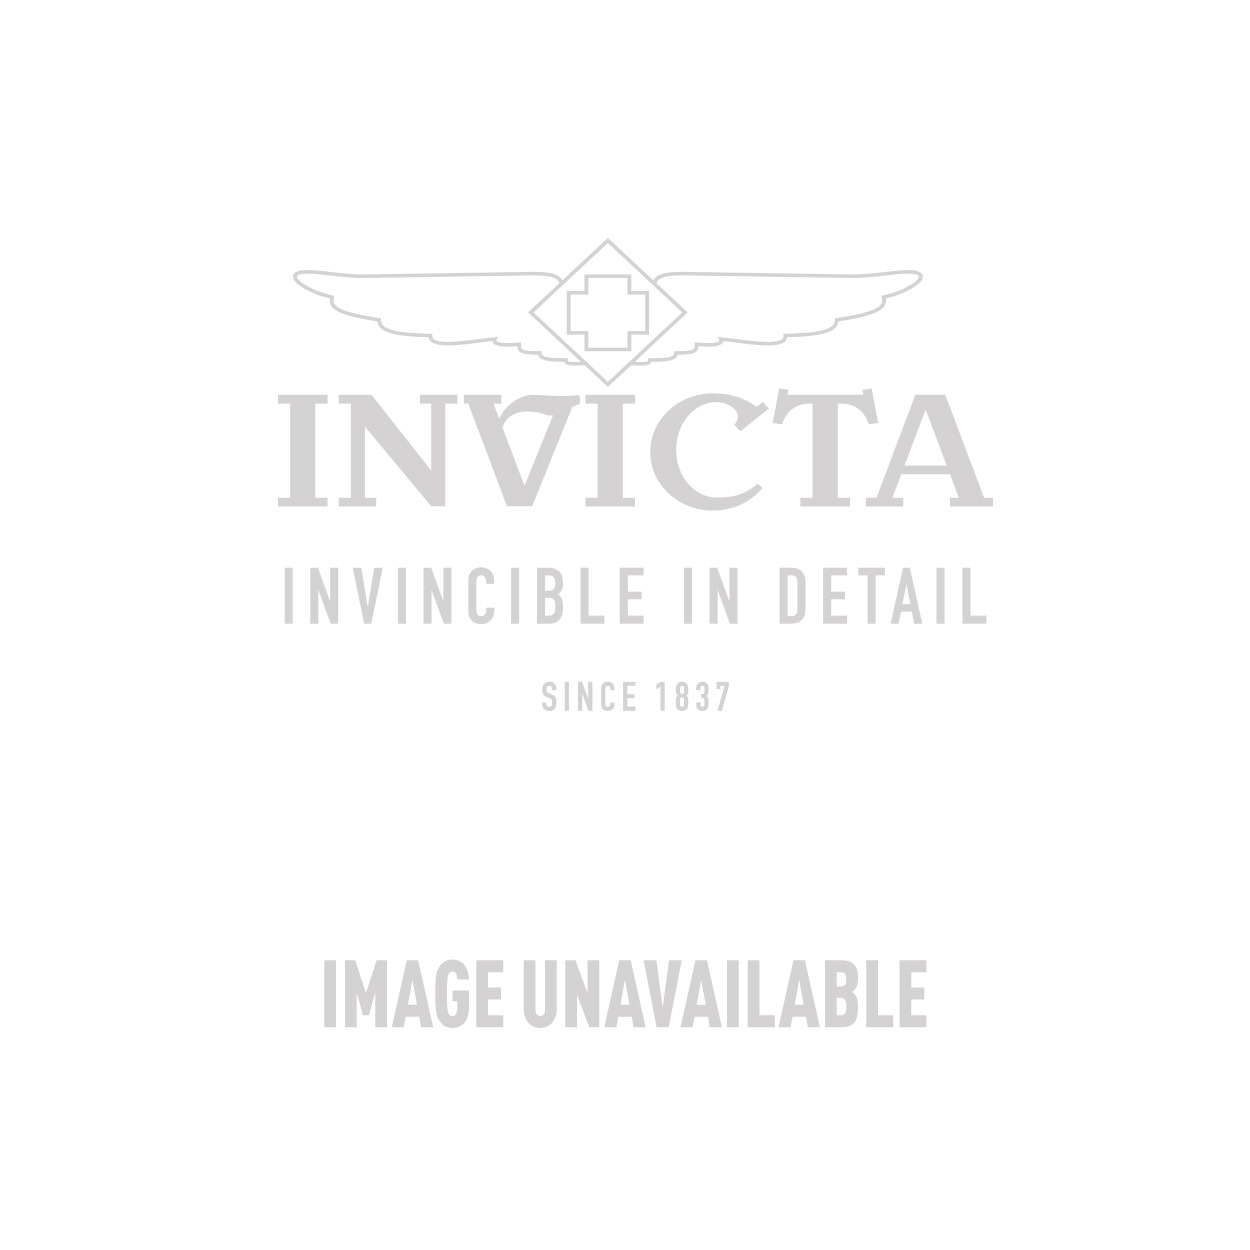 Invicta Specialty Quartz Watch - Gold, Stainless Steel case with Steel, Gold tone Stainless Steel band - Model 14855